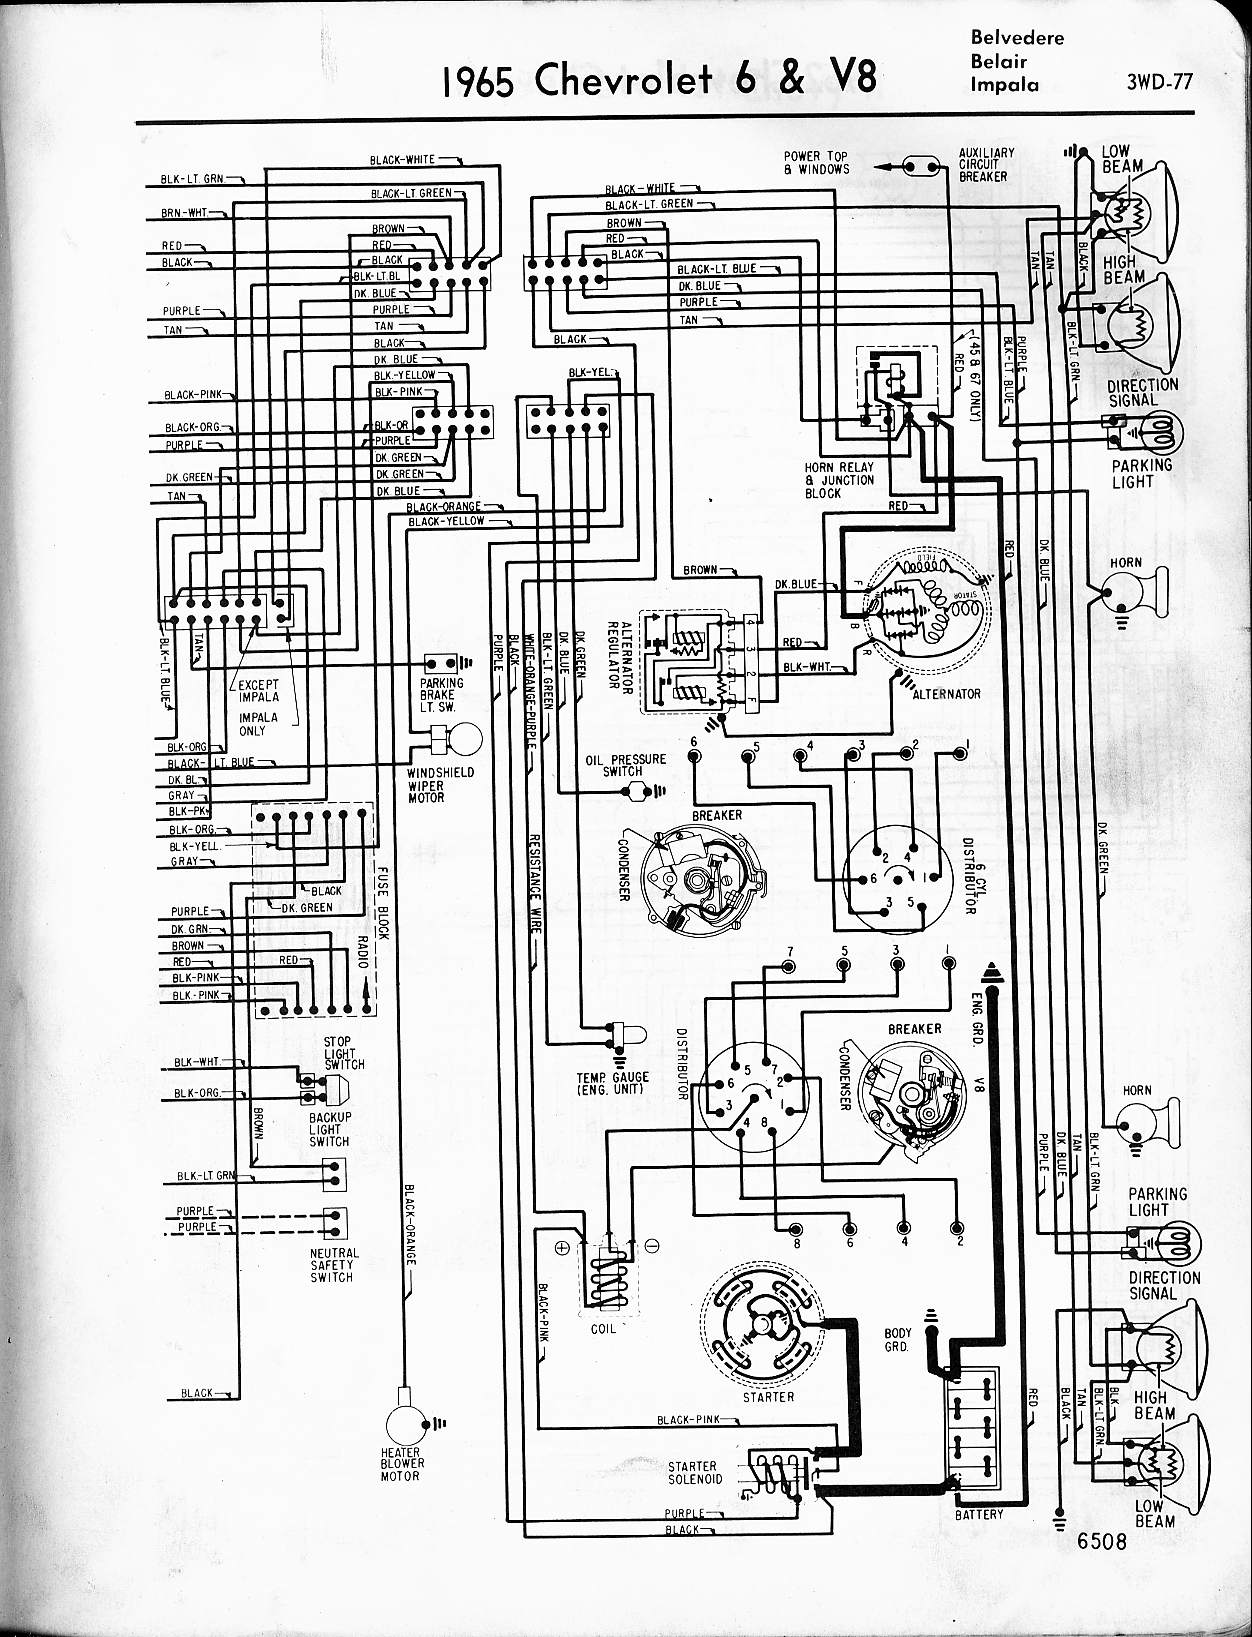 MWireChev65_3WD 077 57 65 chevy wiring diagrams 2003 impala ignition switch wiring diagram at crackthecode.co